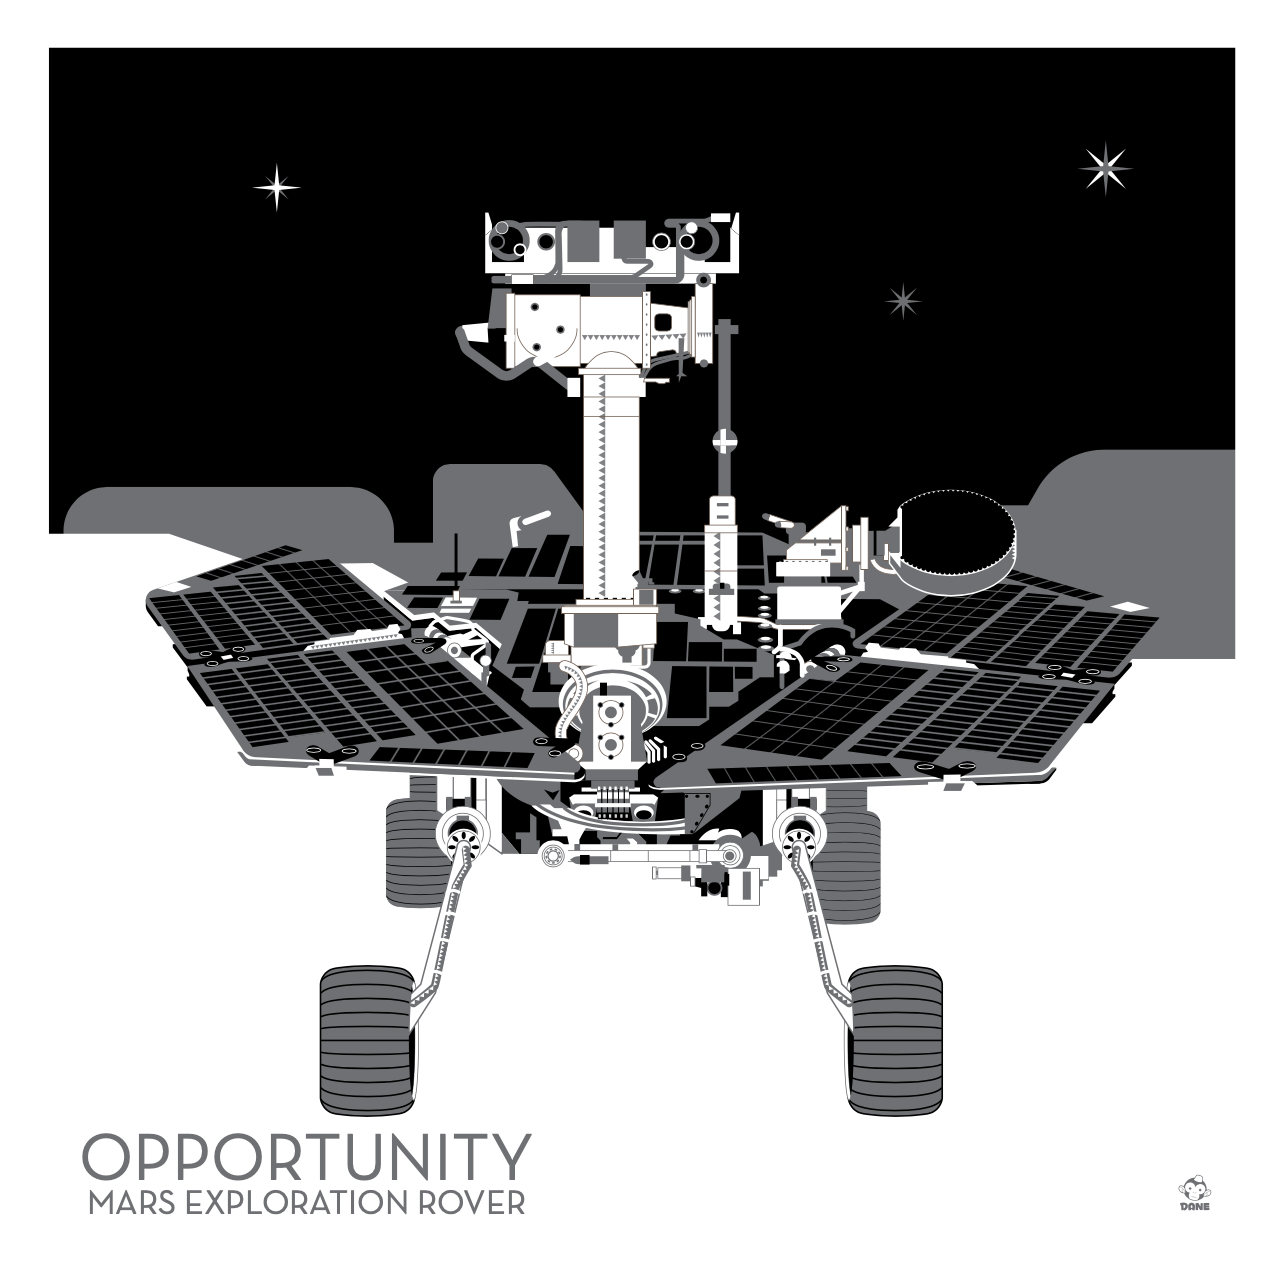 Opportunity Mars rover - 10x10 Giclee Print